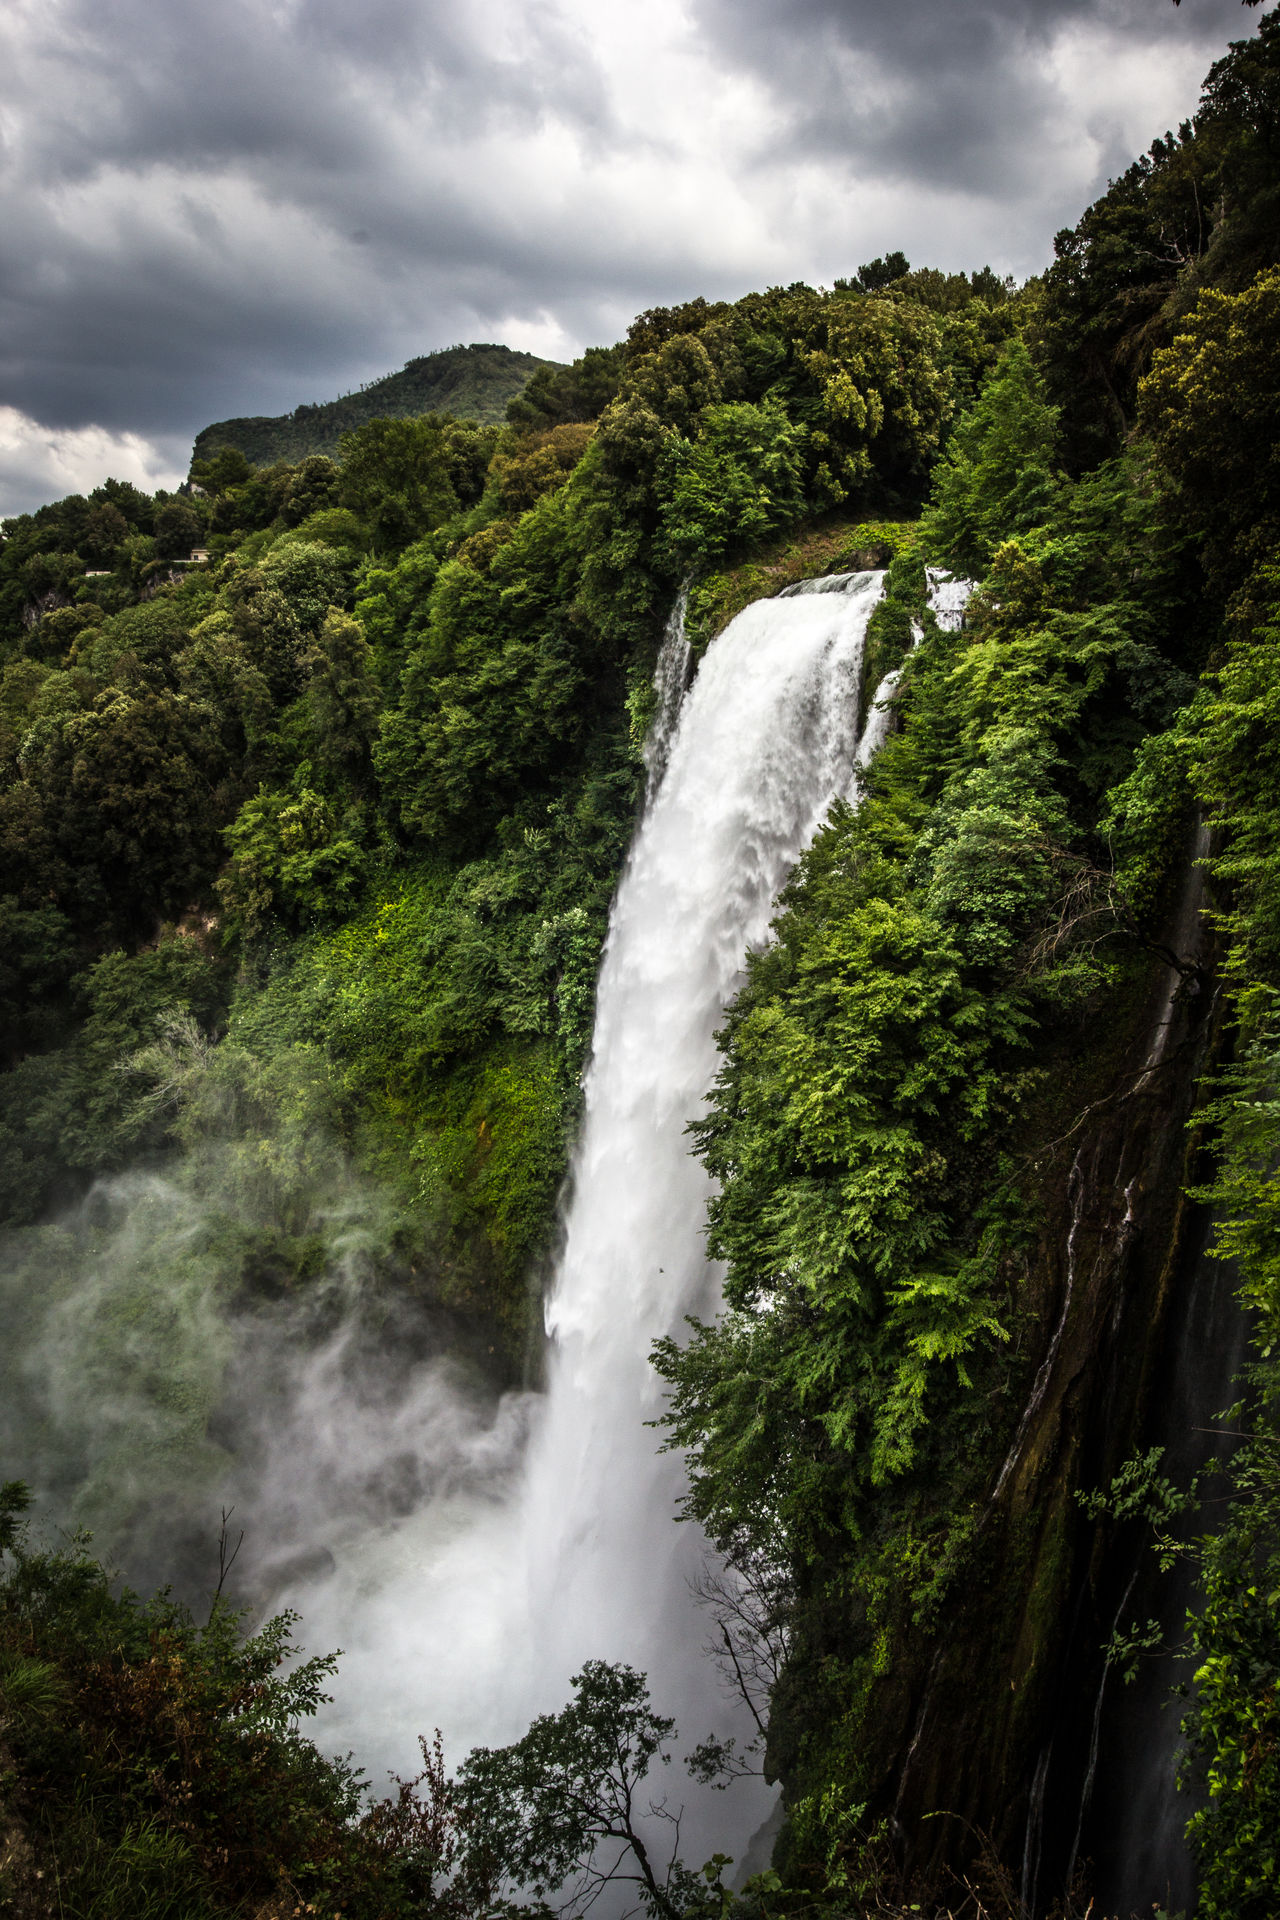 Waterfall of Marmore Beauty In Nature Cloud Cloud - Sky Day Green Color Italia Italy Landscape Long Exposure Lush Foliage Marmore Marmore Falls Marmorefalls Motion Nature No People Outdoors Scenics Sky Terni Tranquil Scene Tranquility Tree Water Waterfall First Eyeem Photo